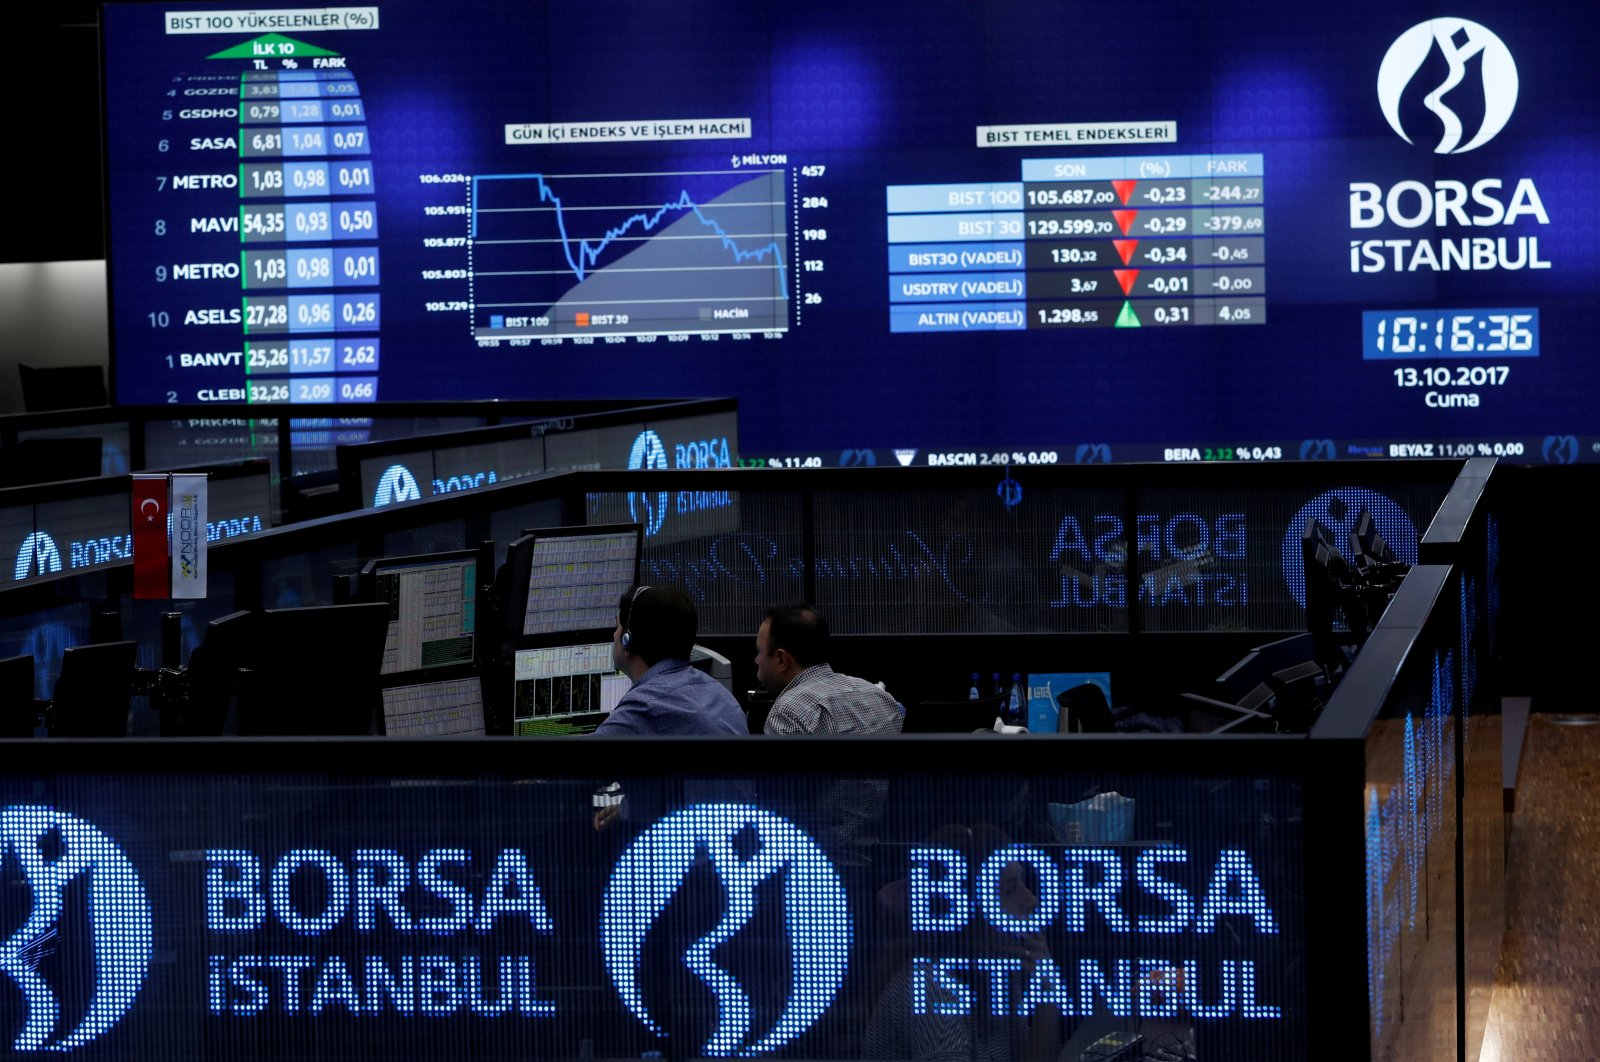 Traders work at their desks on the floor of the Borsa Istanbul Stock Exchange in Istanbul, Turkey, Oct. 13, 2017. (Reuters Photo)